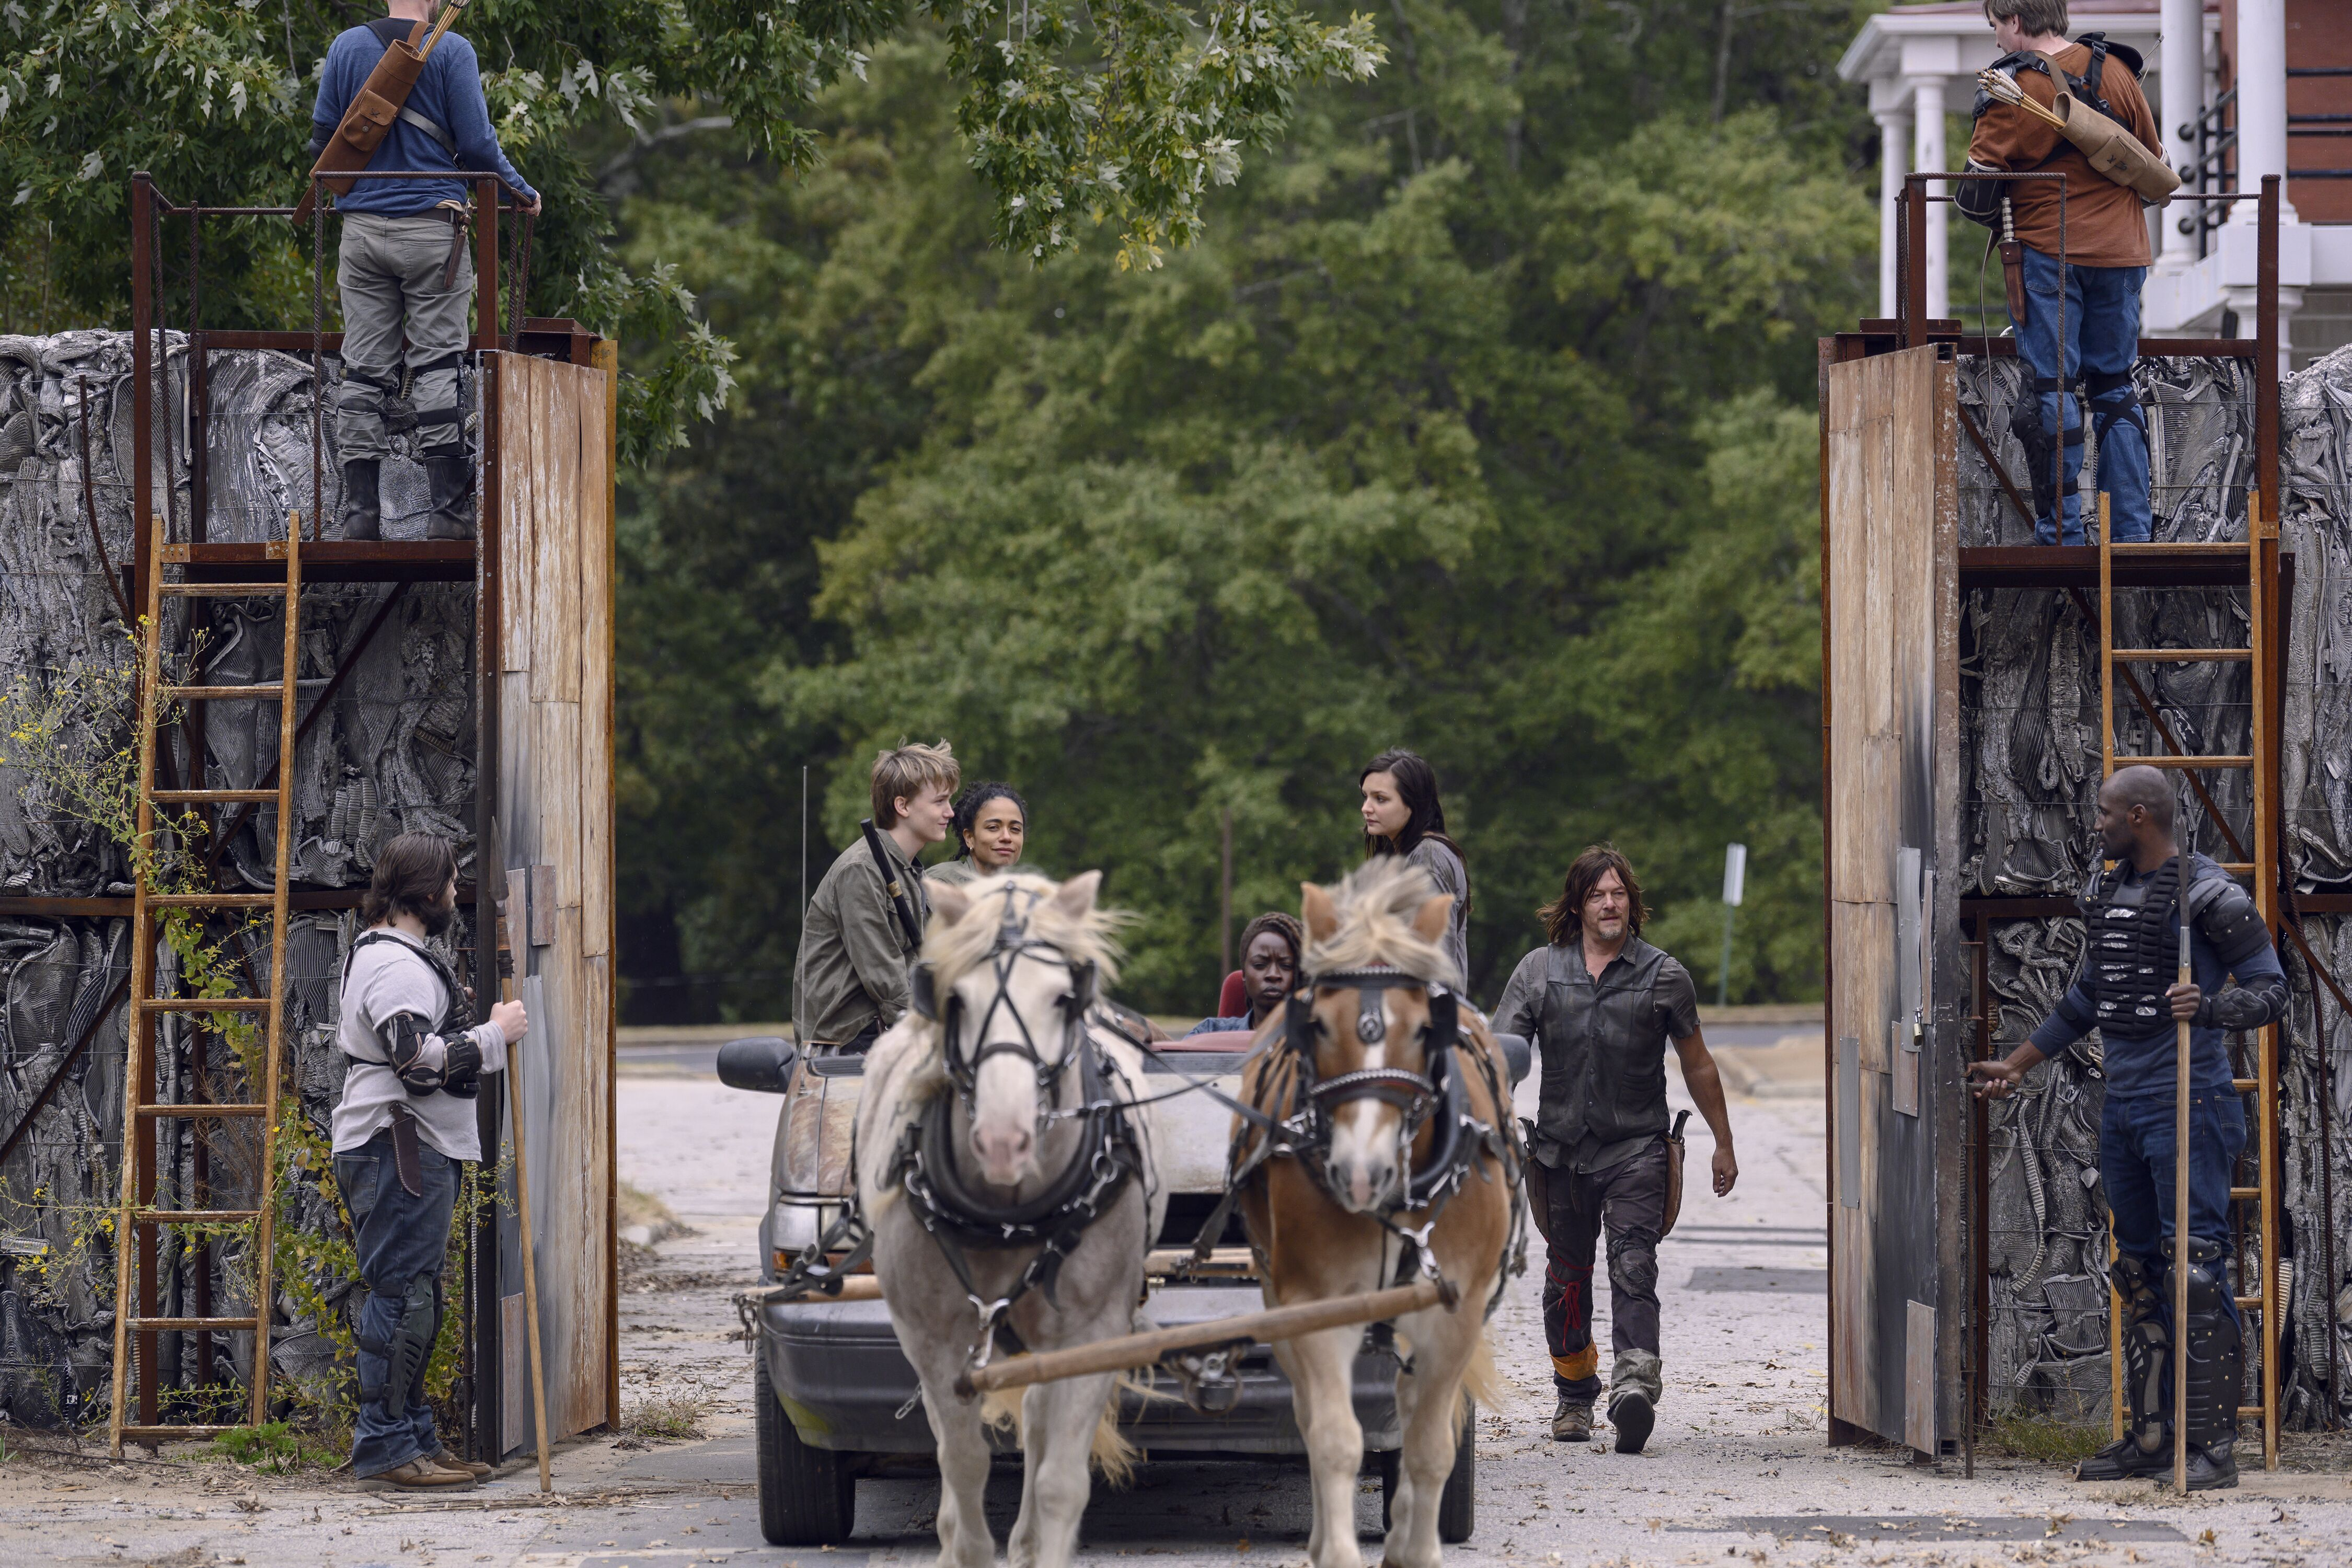 Is conflict with the Whisperers unavoidable now on The Walking Dead?